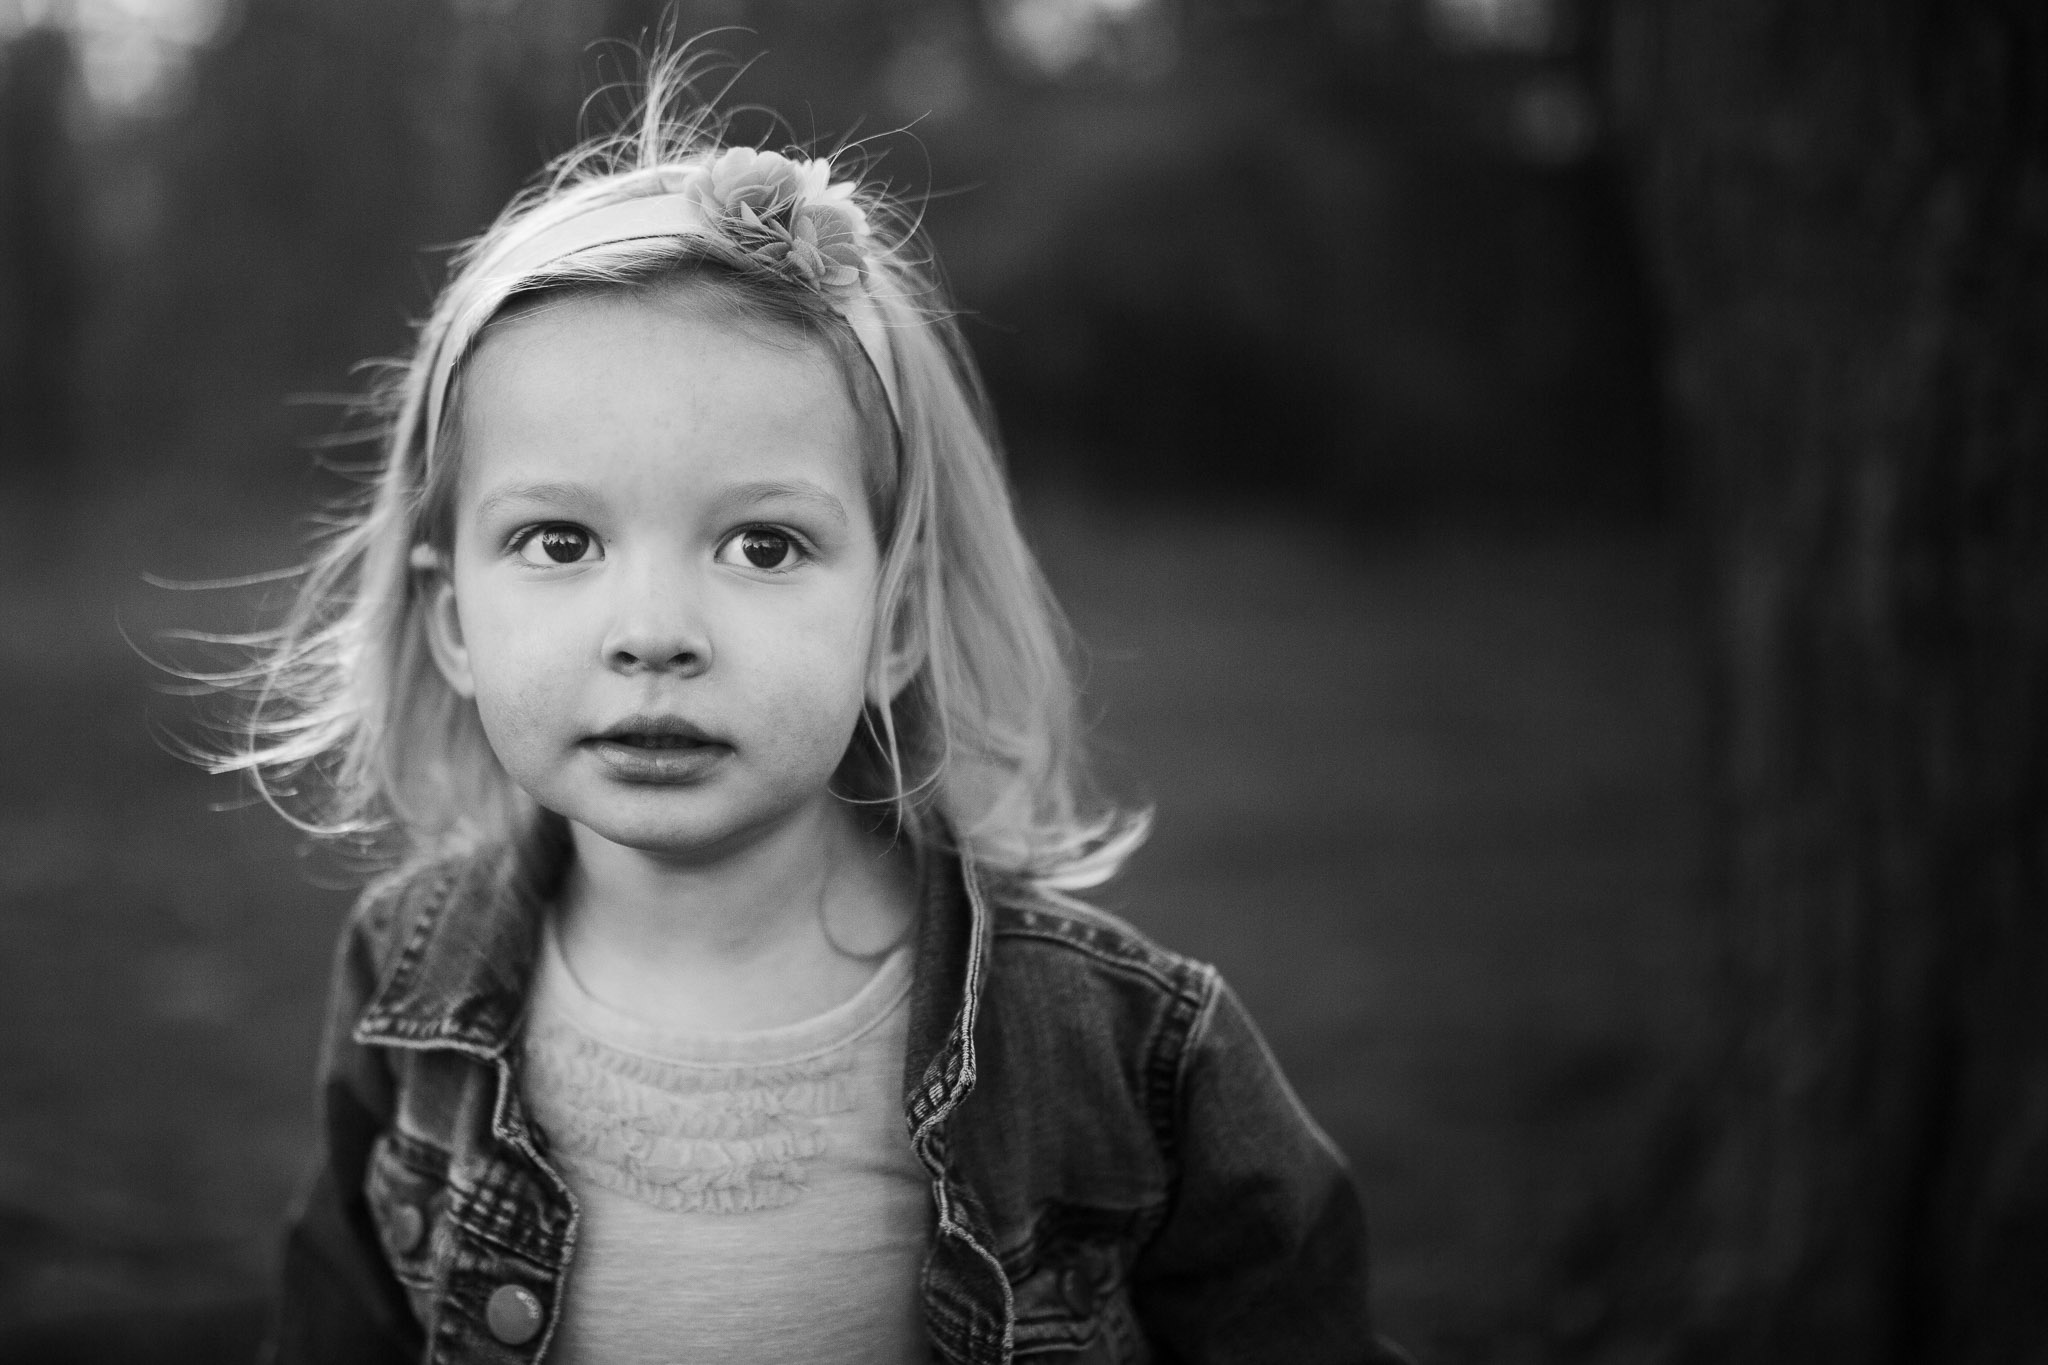 Black and white portrait of a toddler at Red Rock Overlook in Leesburg, VA